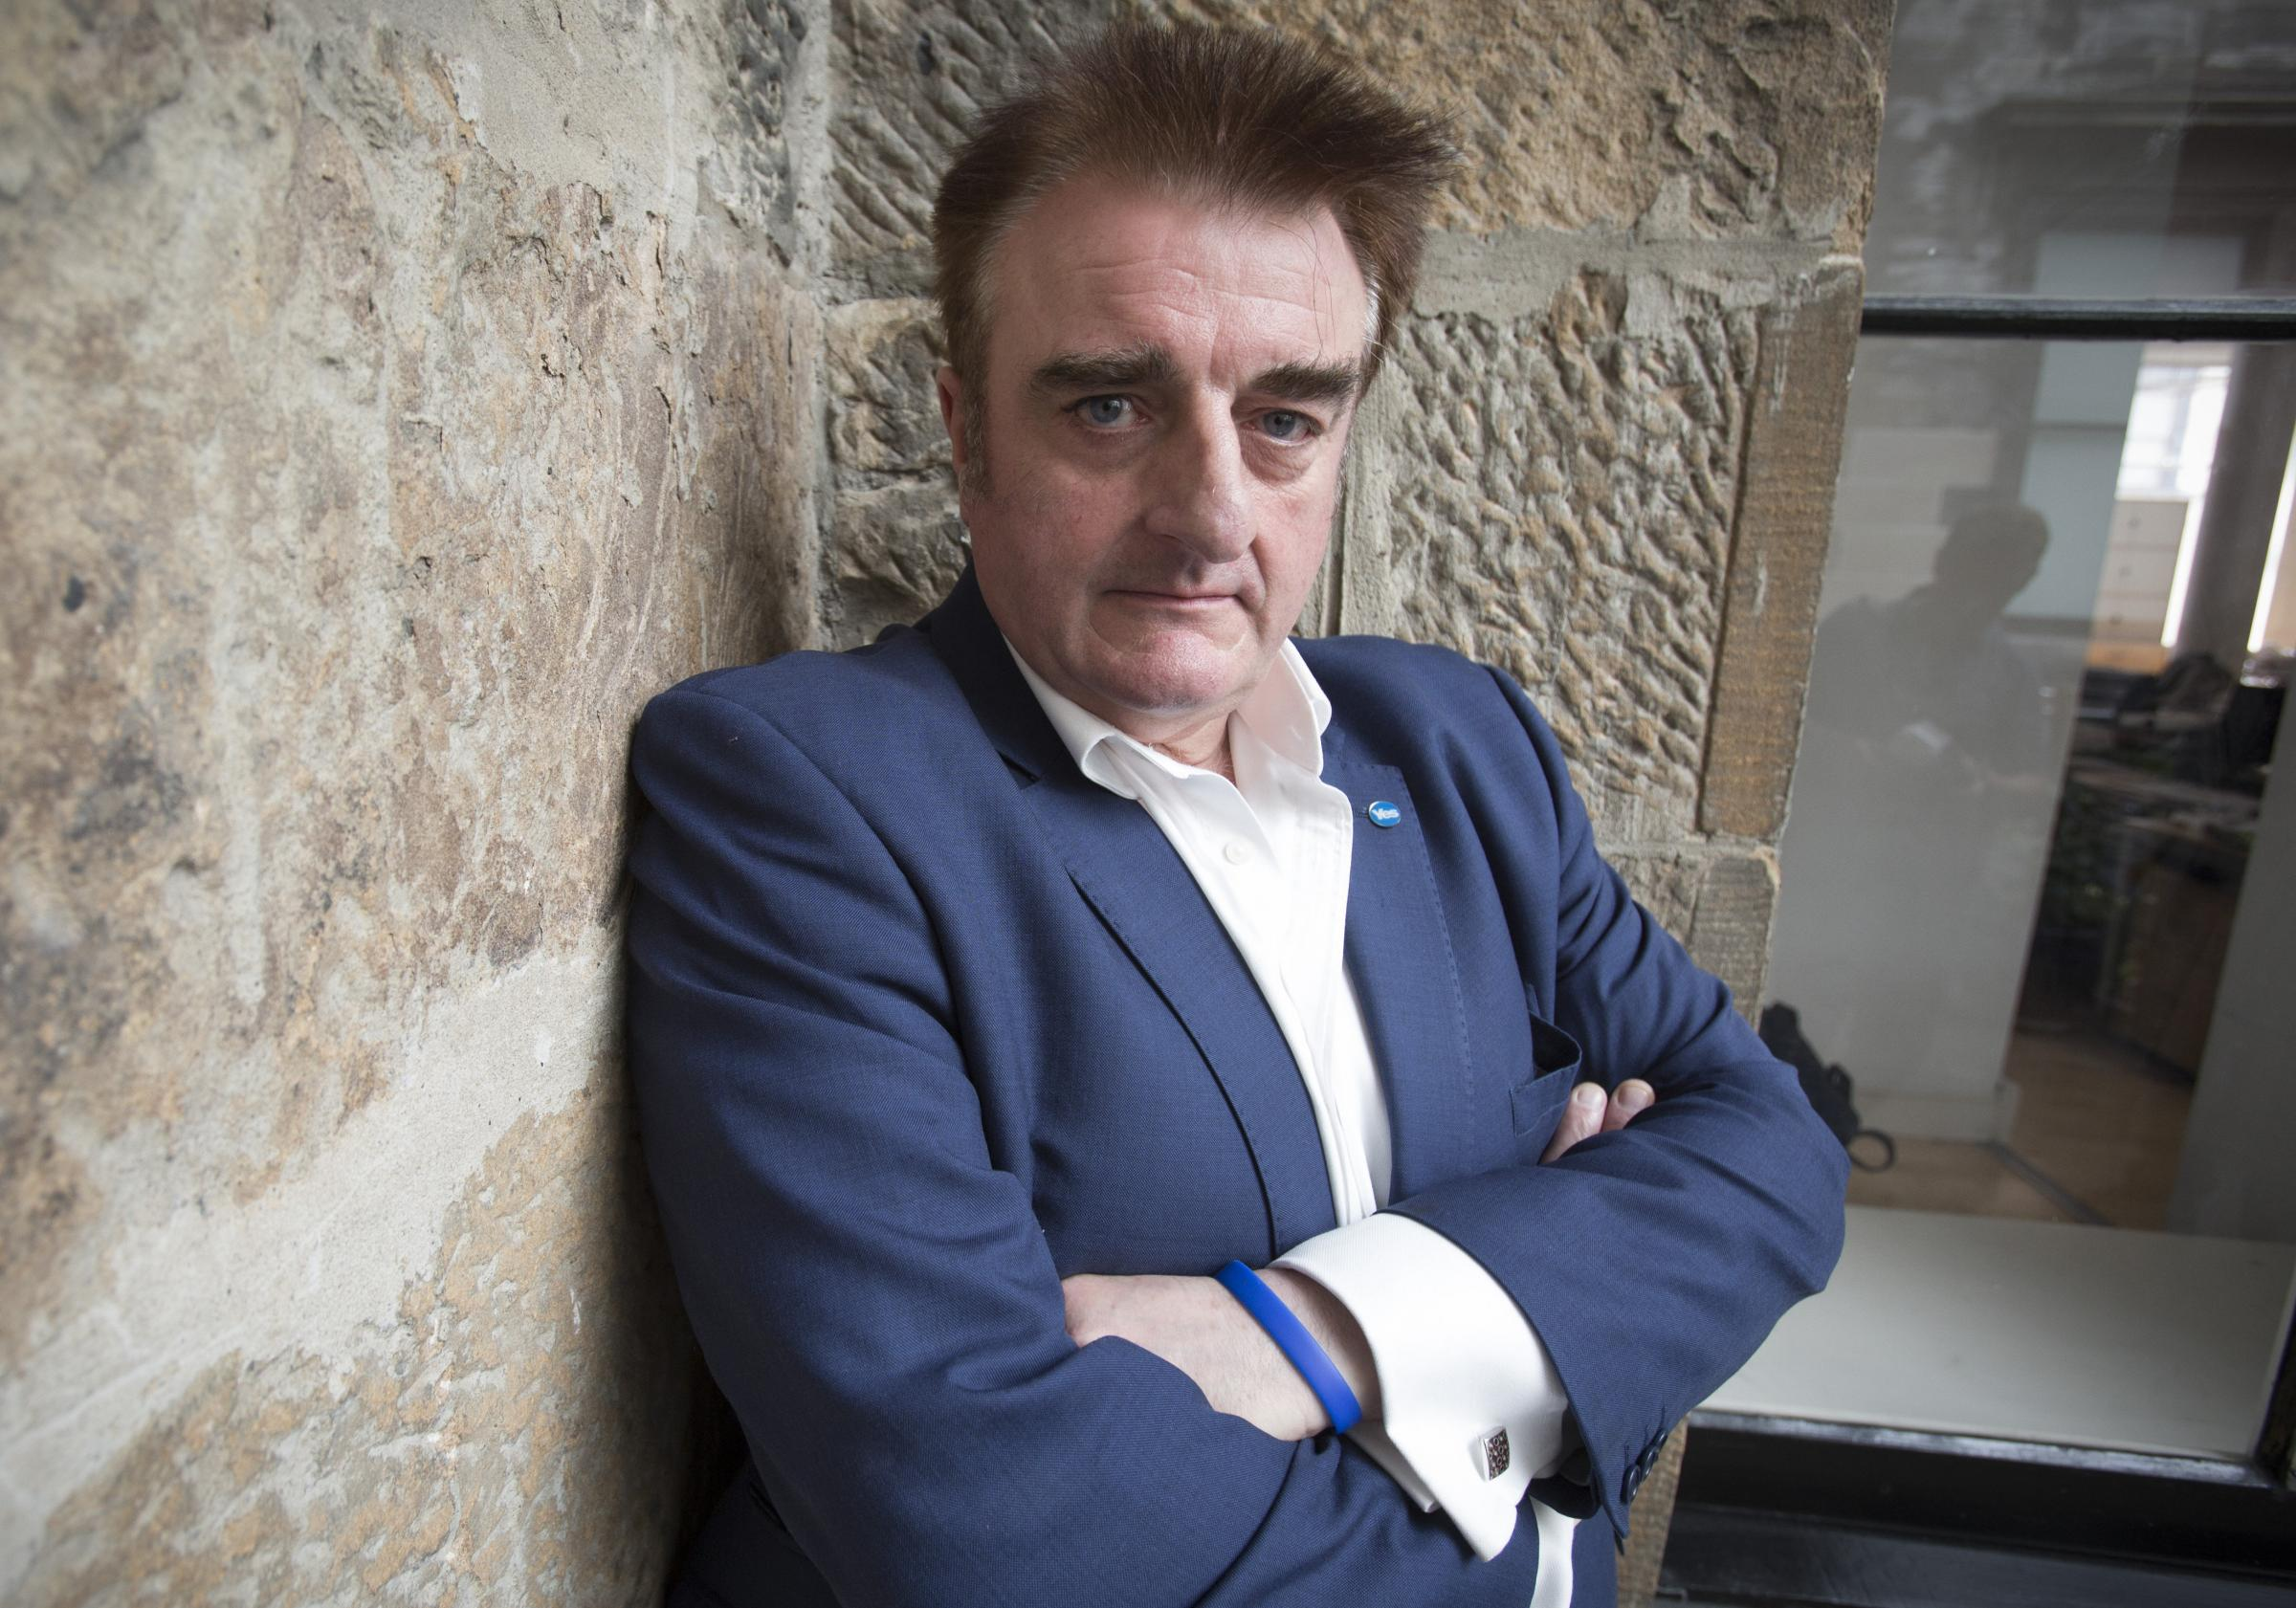 Is Tommy Sheppard the popular choice for the depute leader role?